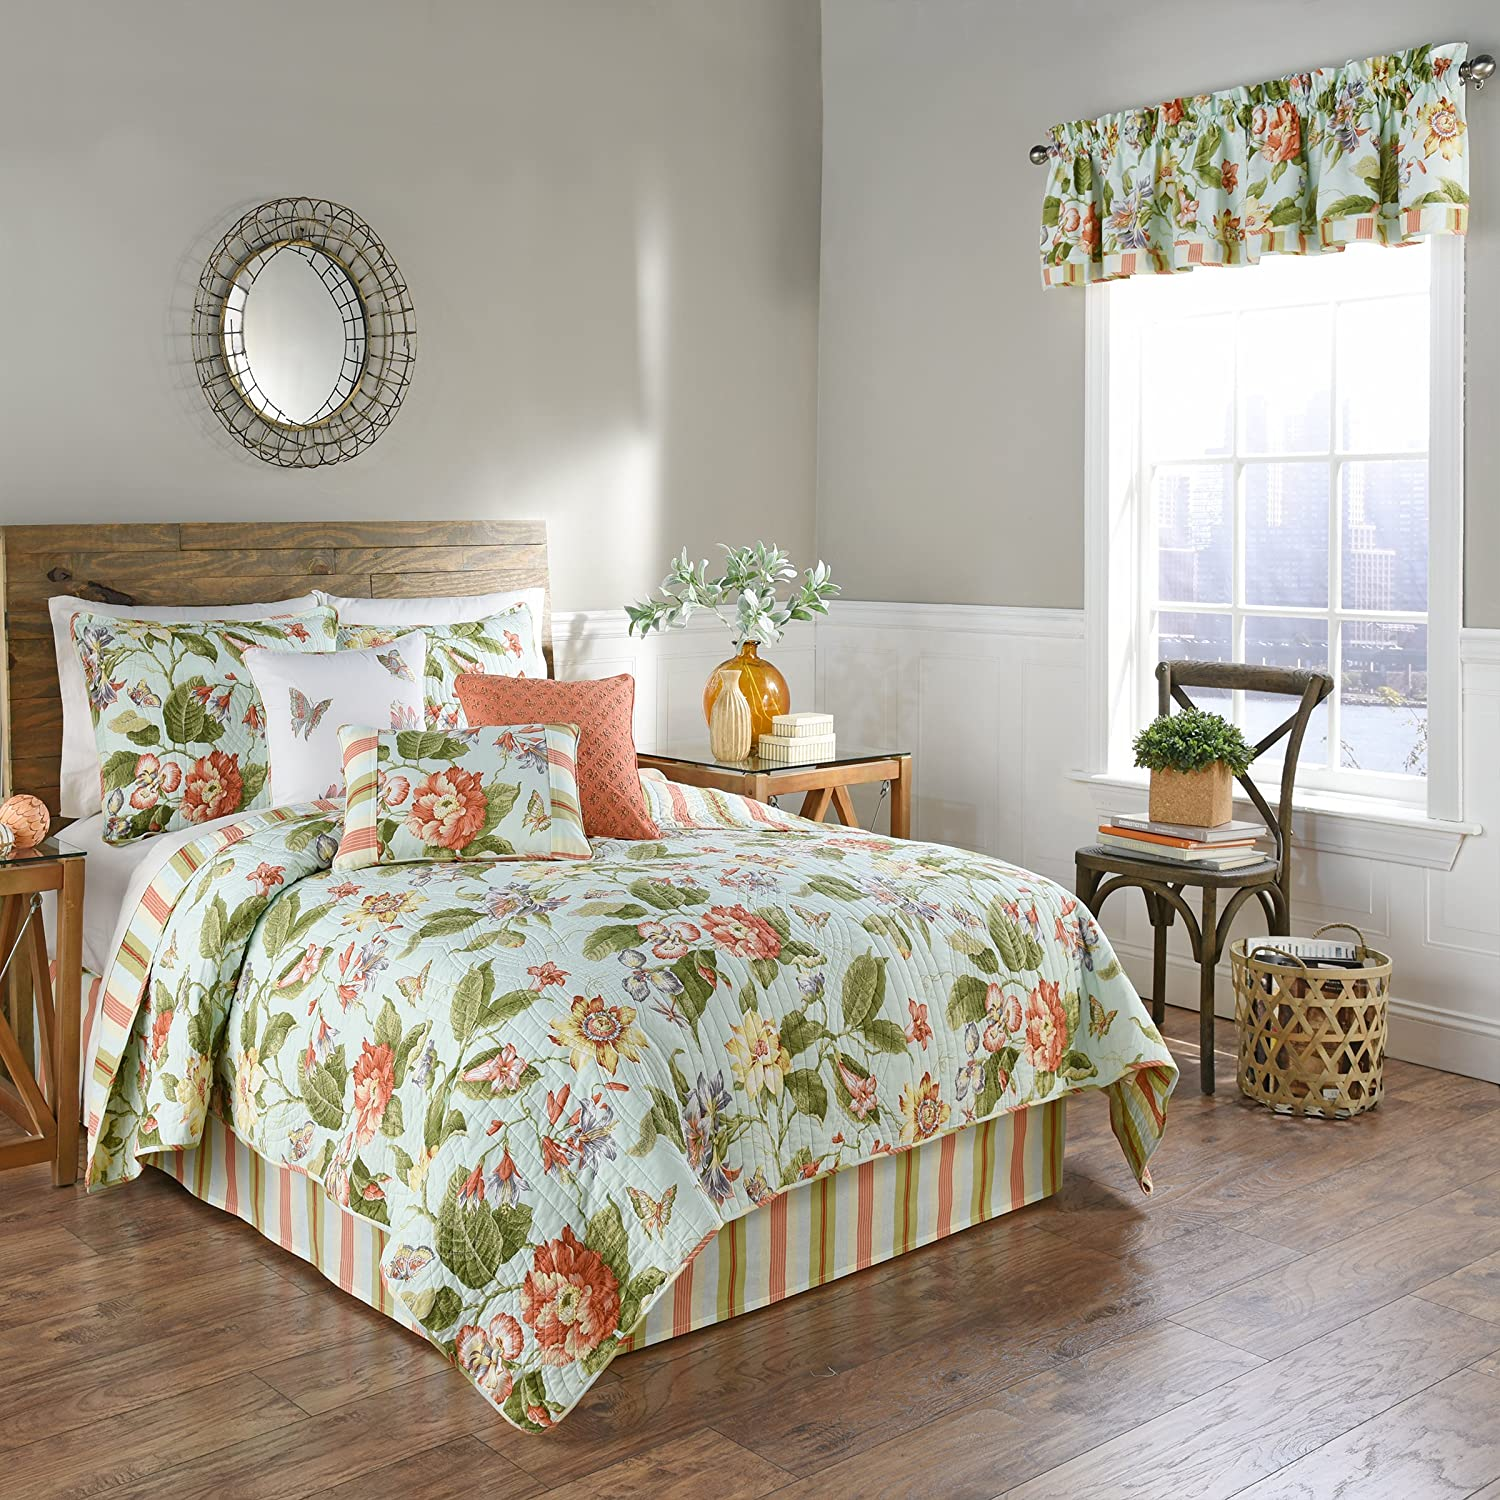 Waverly Laurel Springs 4 Piece Quilted Reversible Bedspread Coverlet Sets, Full/Queen, Opa